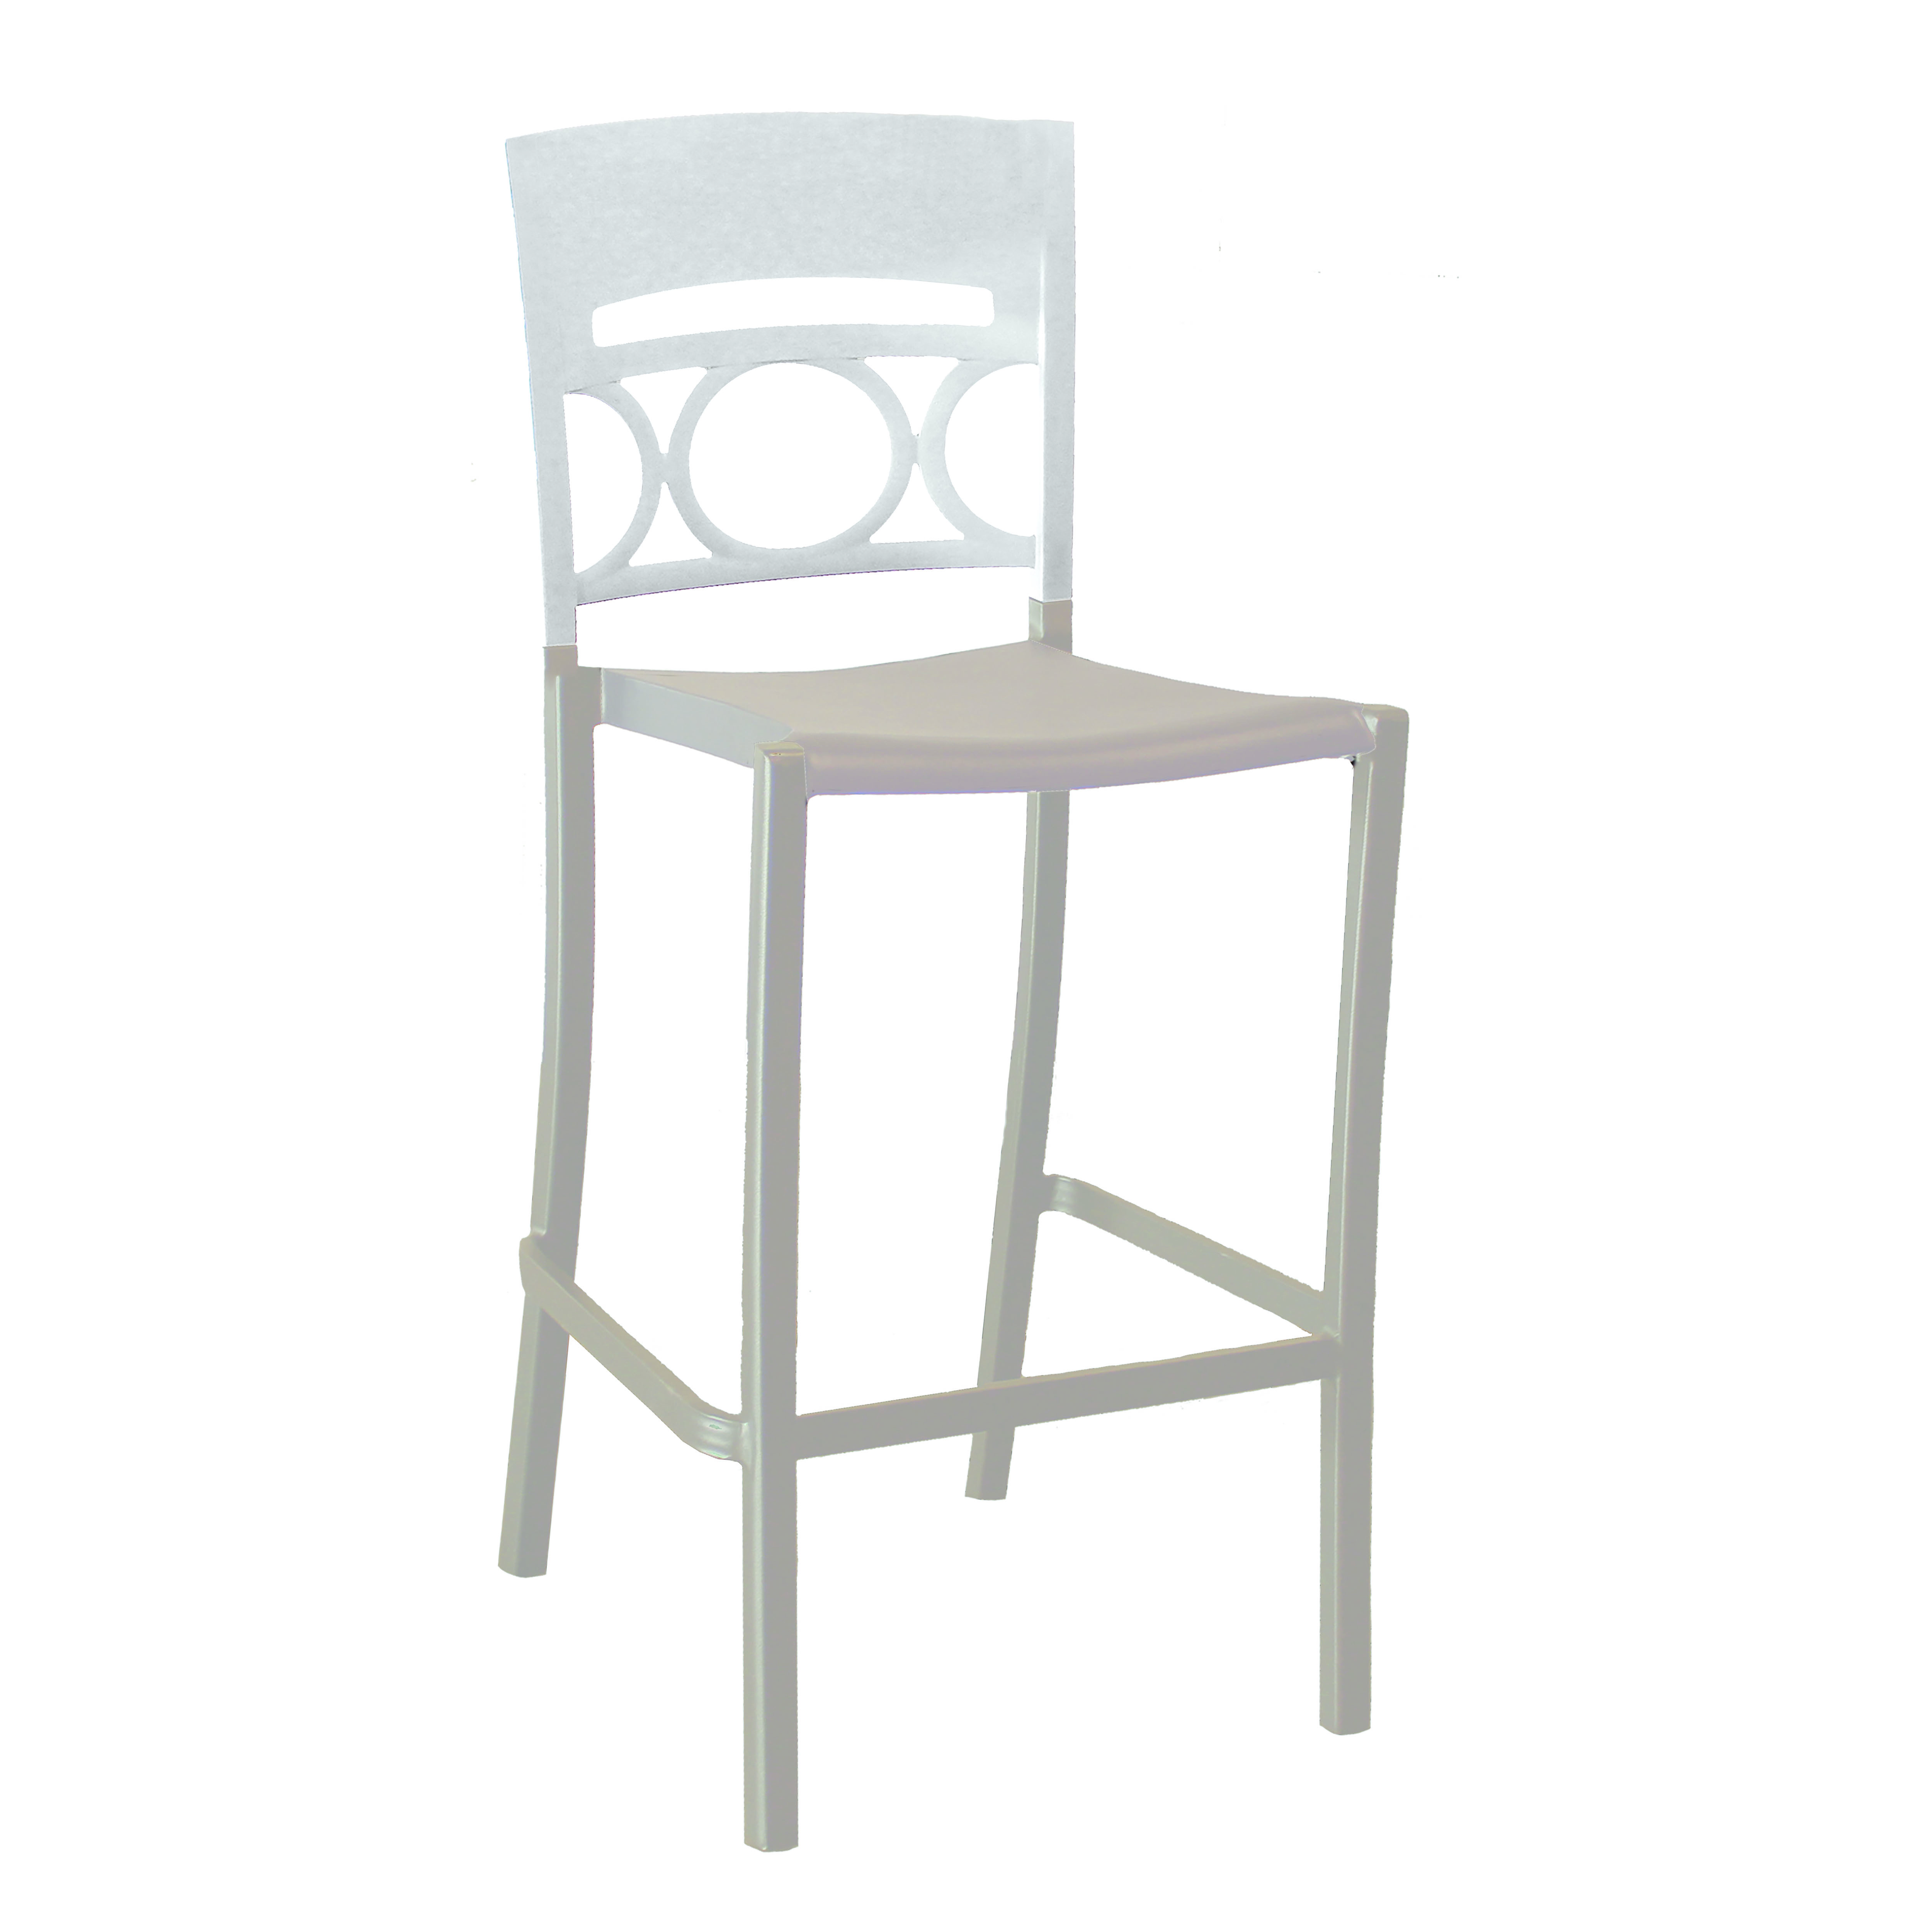 Grosfillex US456096 bar stool, stacking, outdoor